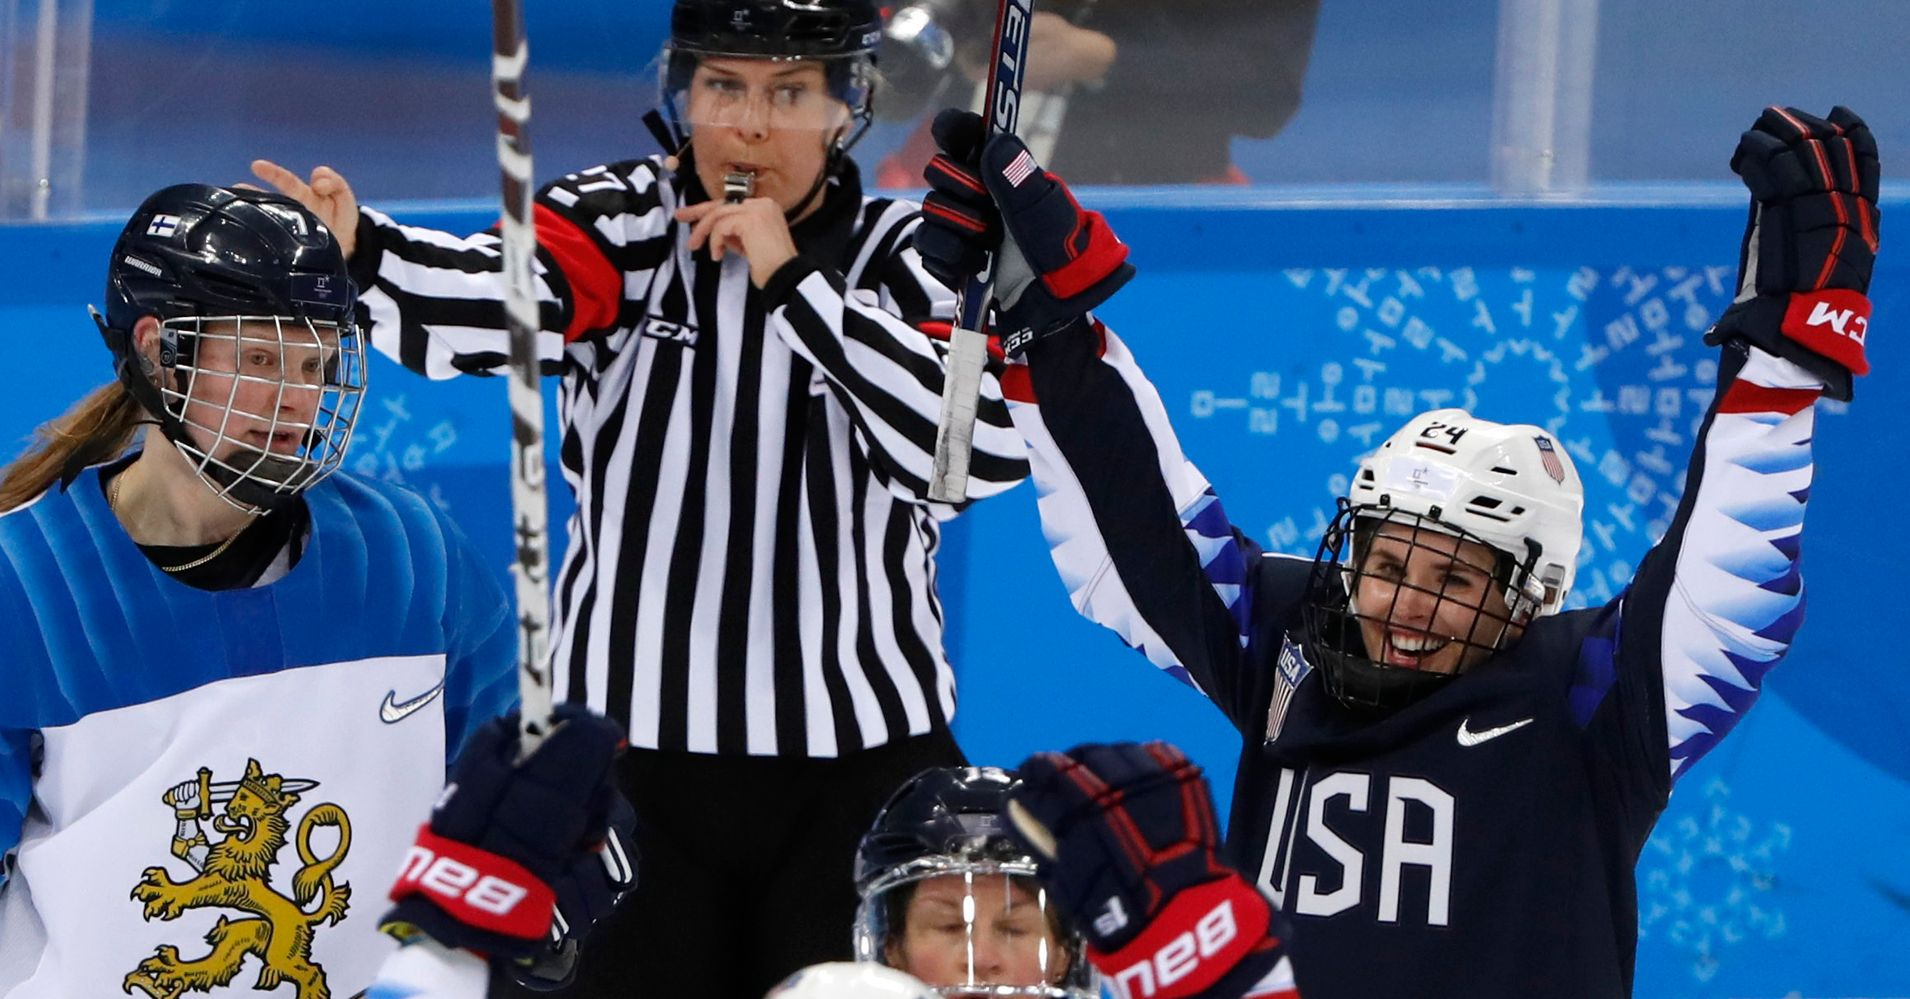 U.S. Women's Ice Hockey Team Crushes Finland, Heads To Olympic Finals